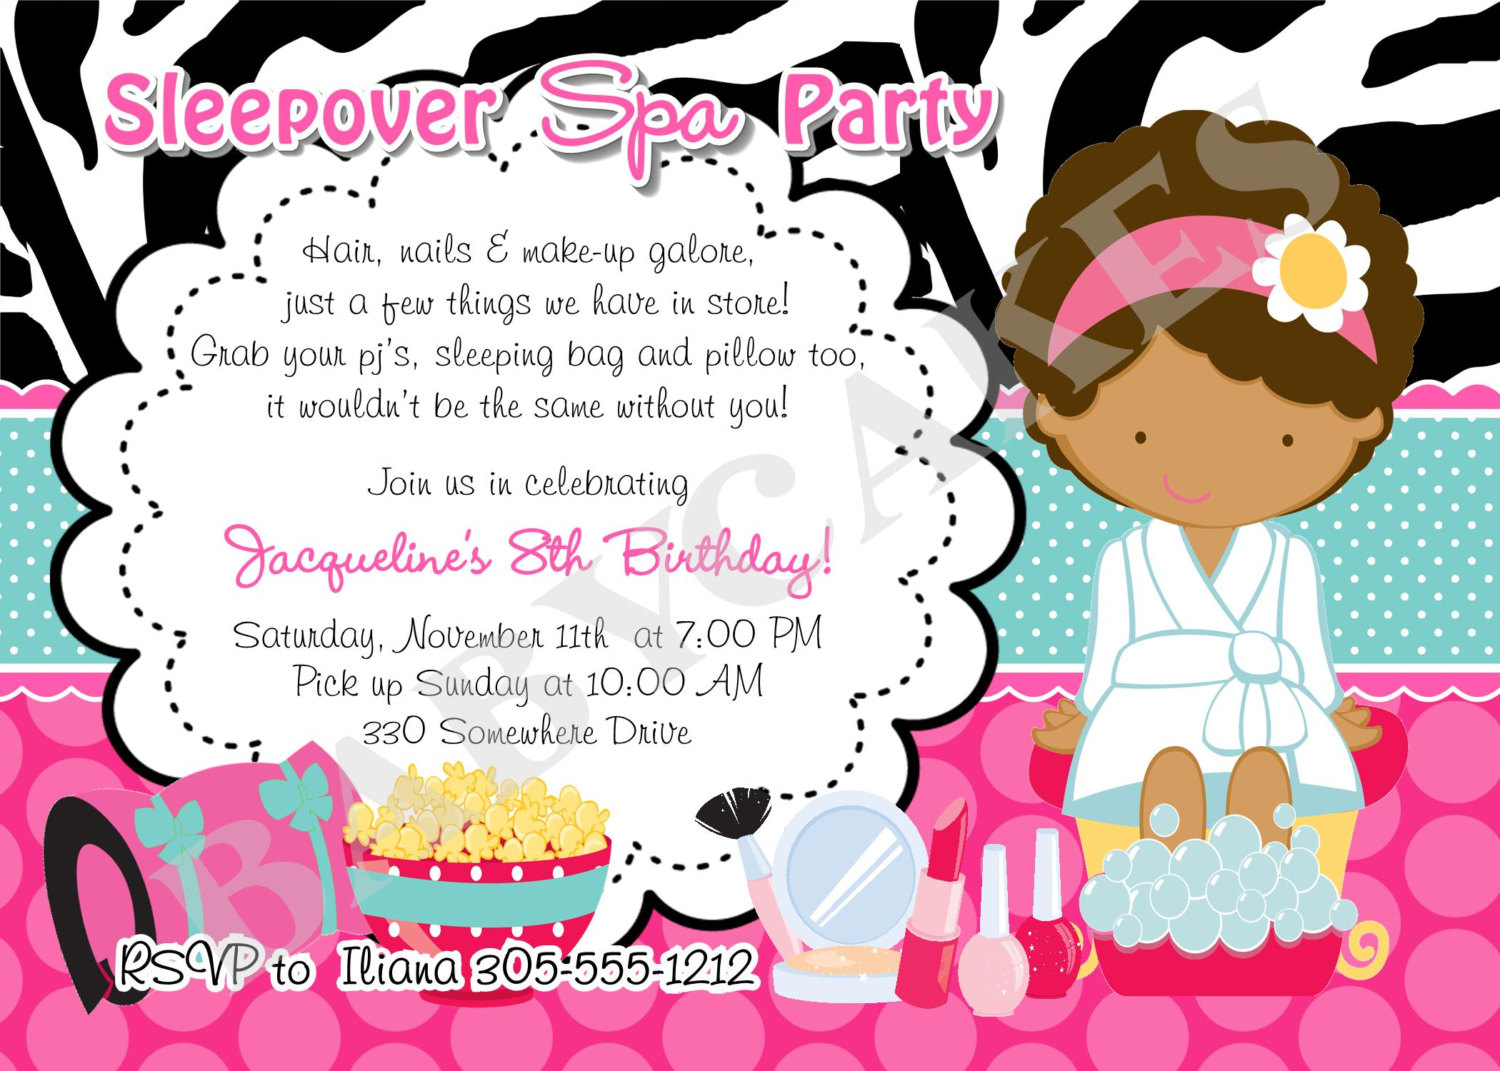 Sleepover birthday party invitations free printable etamemibawa sleepover birthday party invitations free printable filmwisefo Image collections